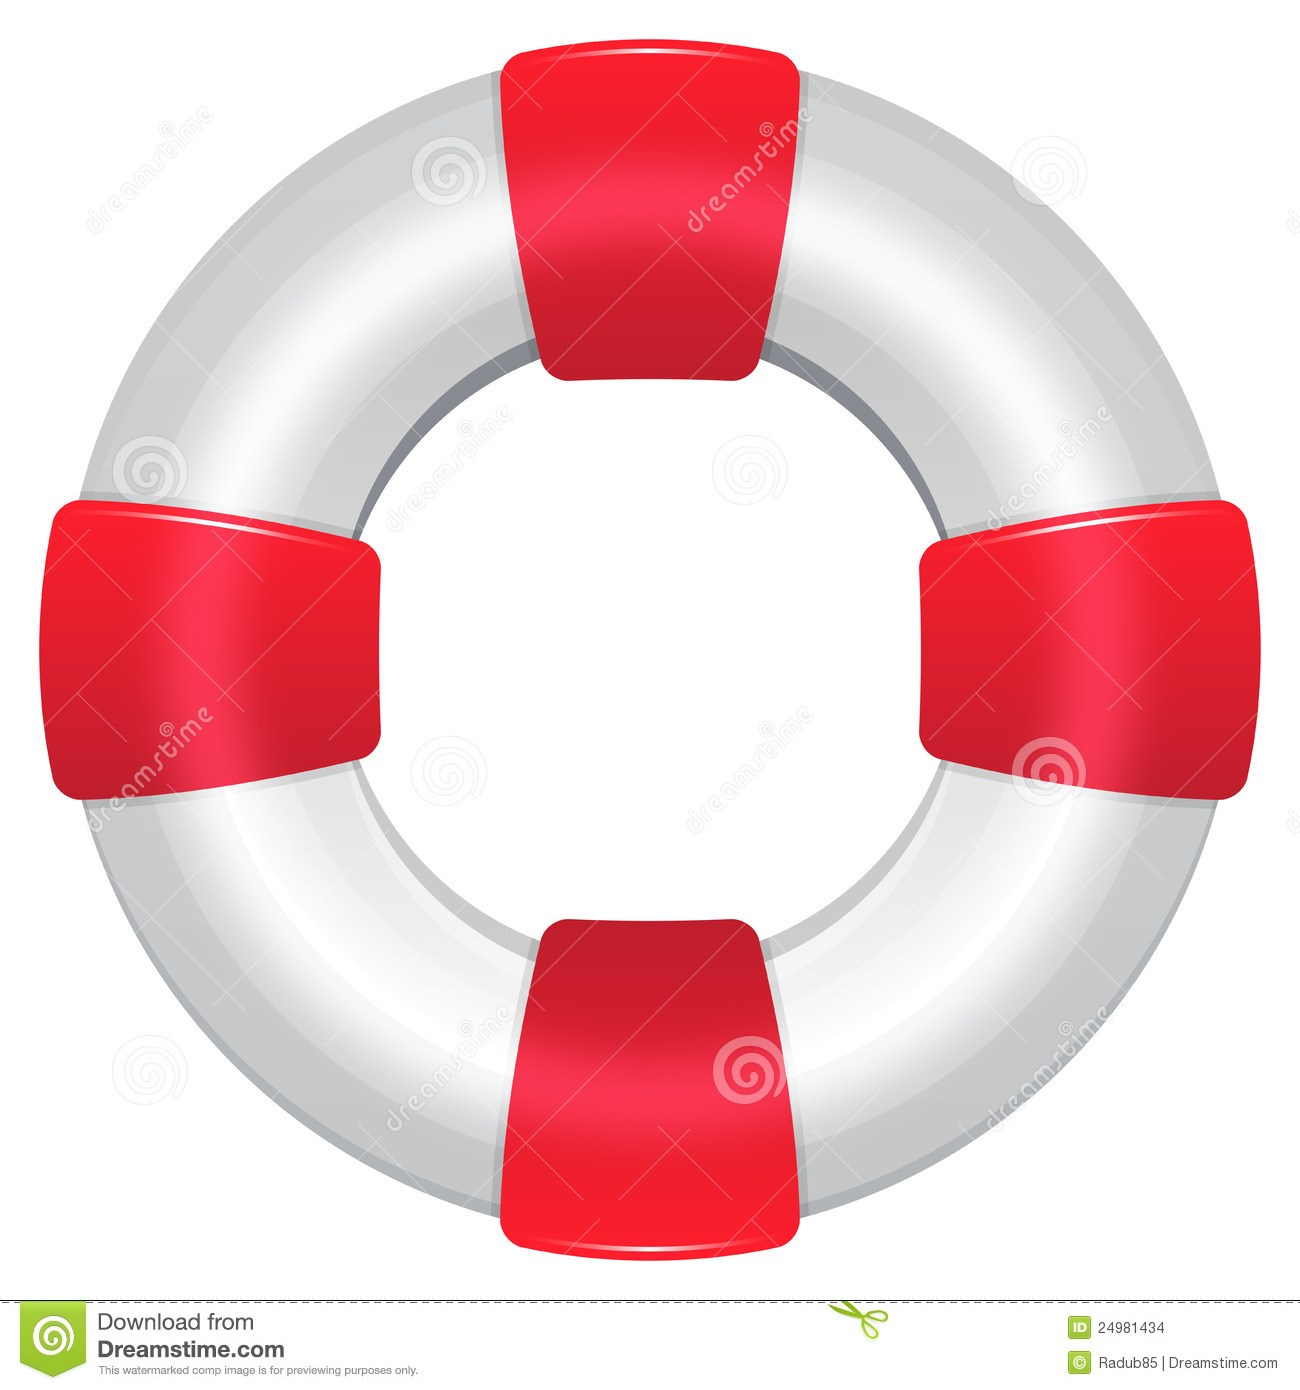 Life preserver ring clipart free library Life preserver ring clipart 7 » Clipart Portal free library